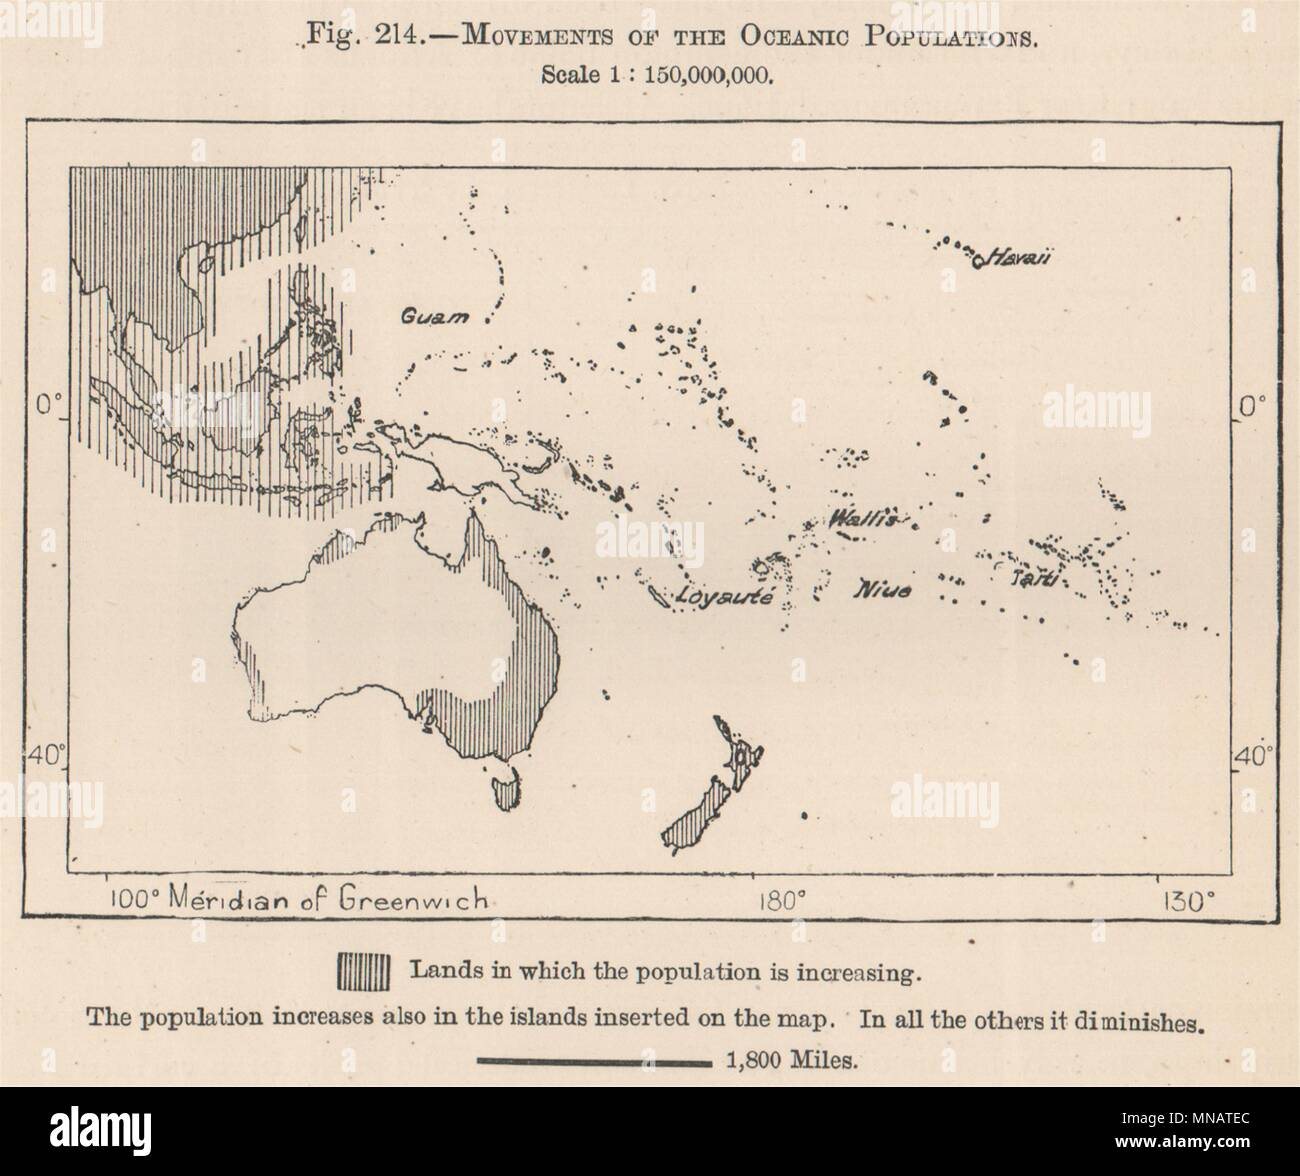 Movements of the Oceanic Populations. Oceania. Polynesia 1885 old antique map - Stock Image